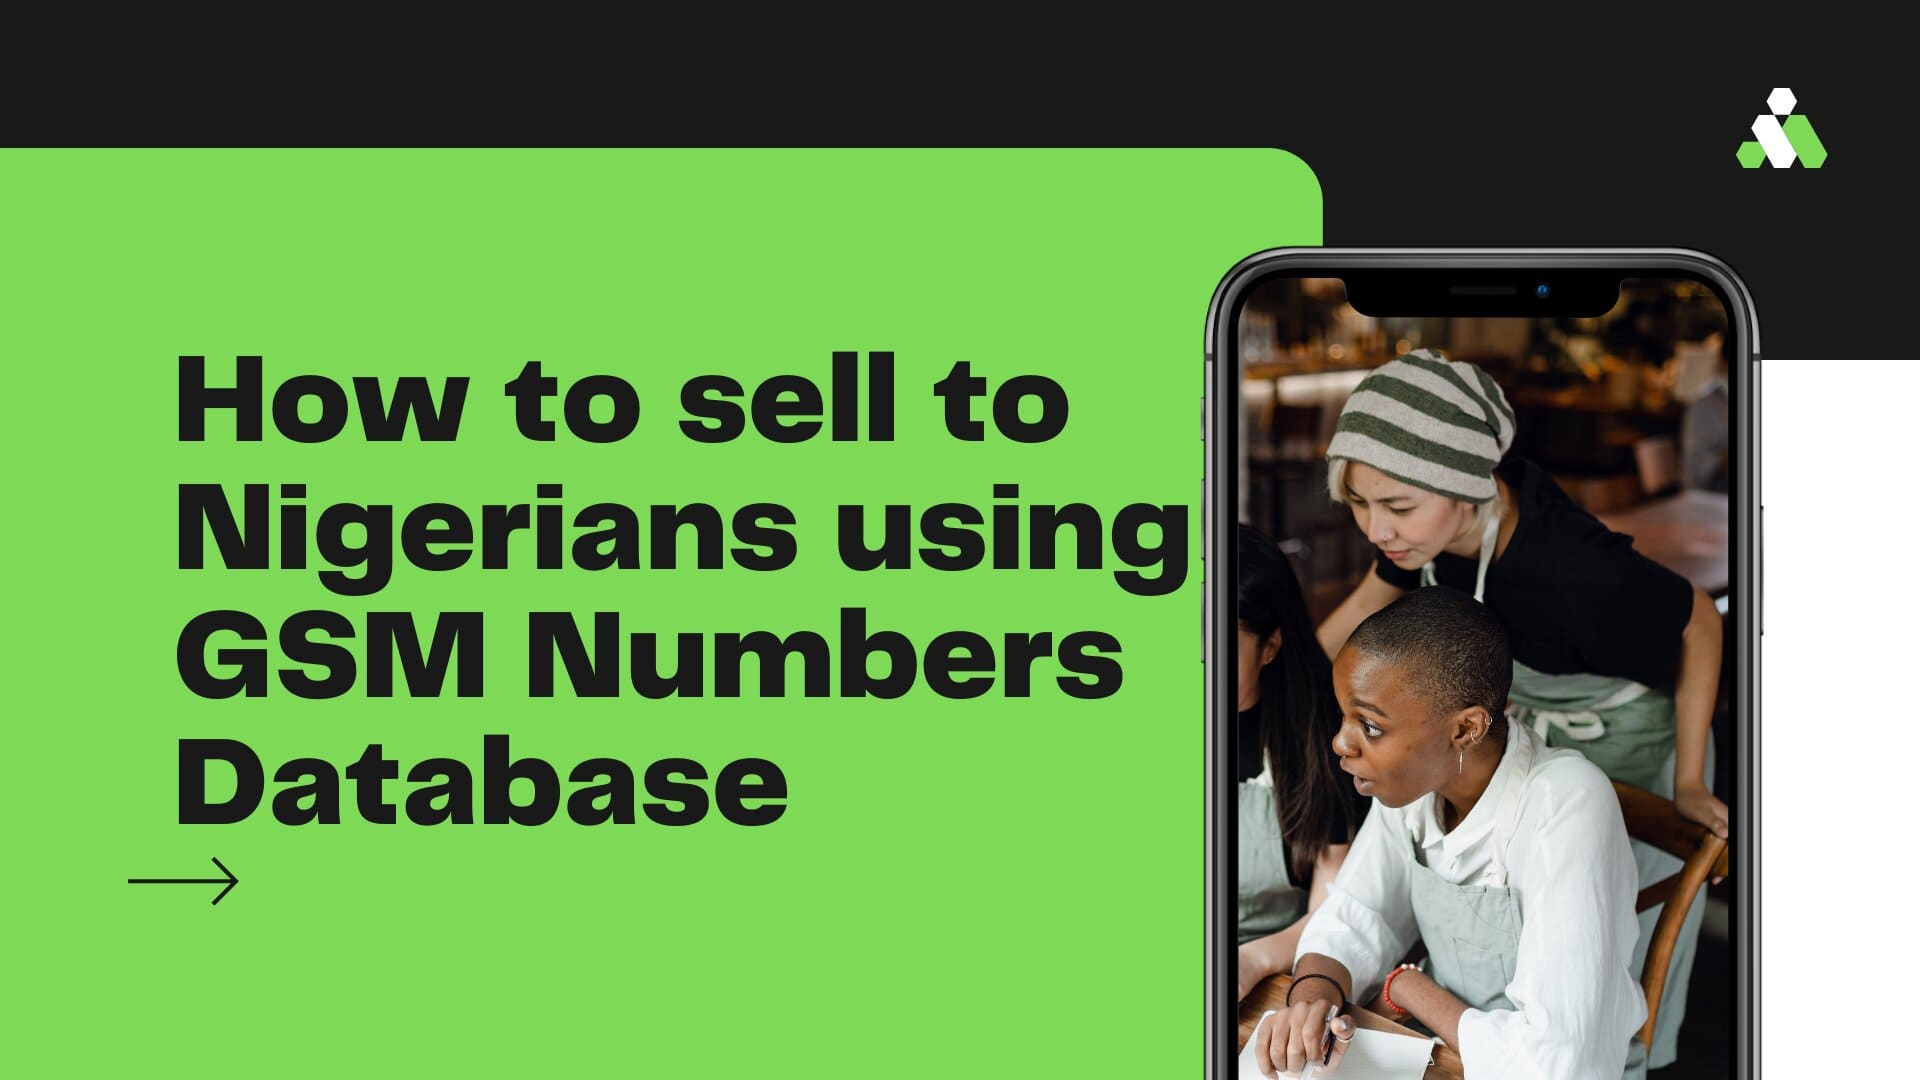 How to sell to Nigerians using GSM Numbers Database